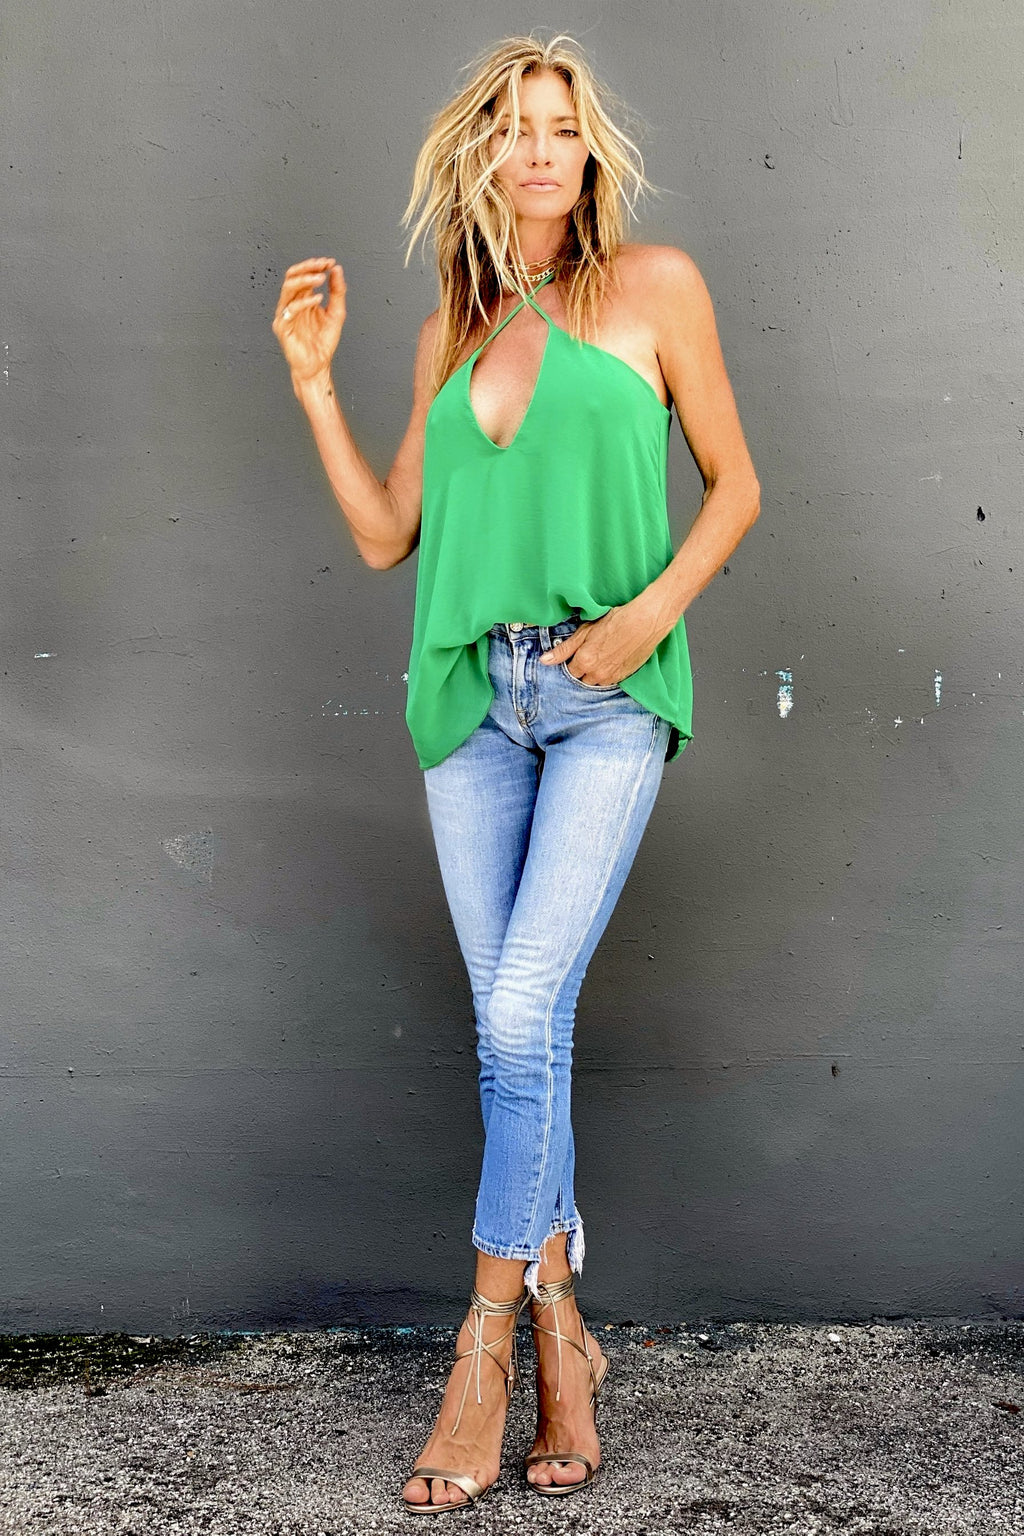 Tara Top Kelly Green - Small / Kelly Green - Medium / Kelly Green - Large / Kelly Green - Voluptuos / Kelly Green